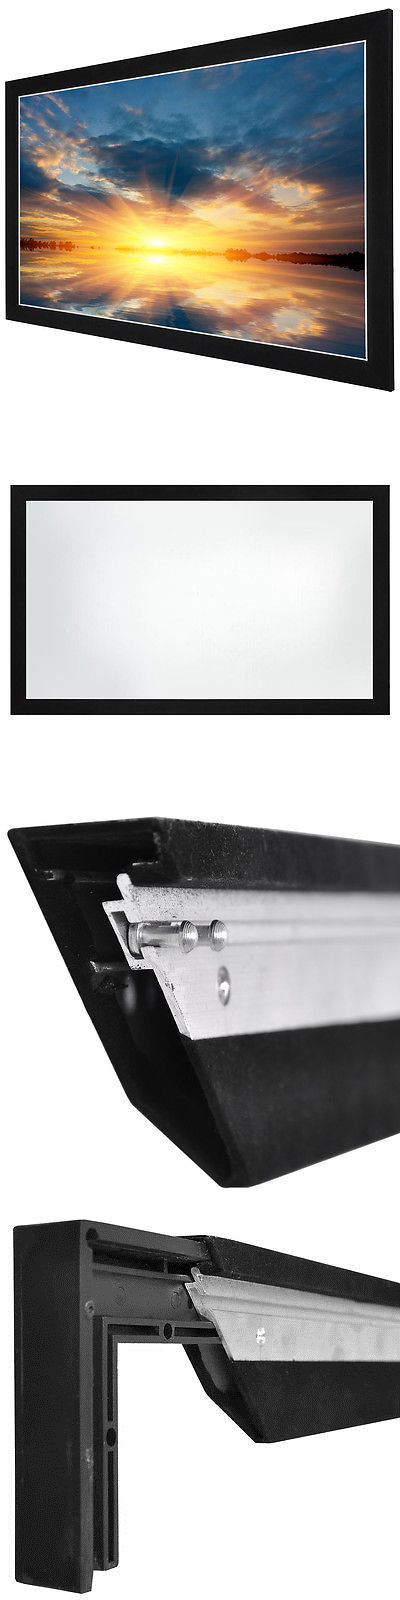 Projection Screens and Material: 84 16:9 Hd Aluminum Fixed Frame ...